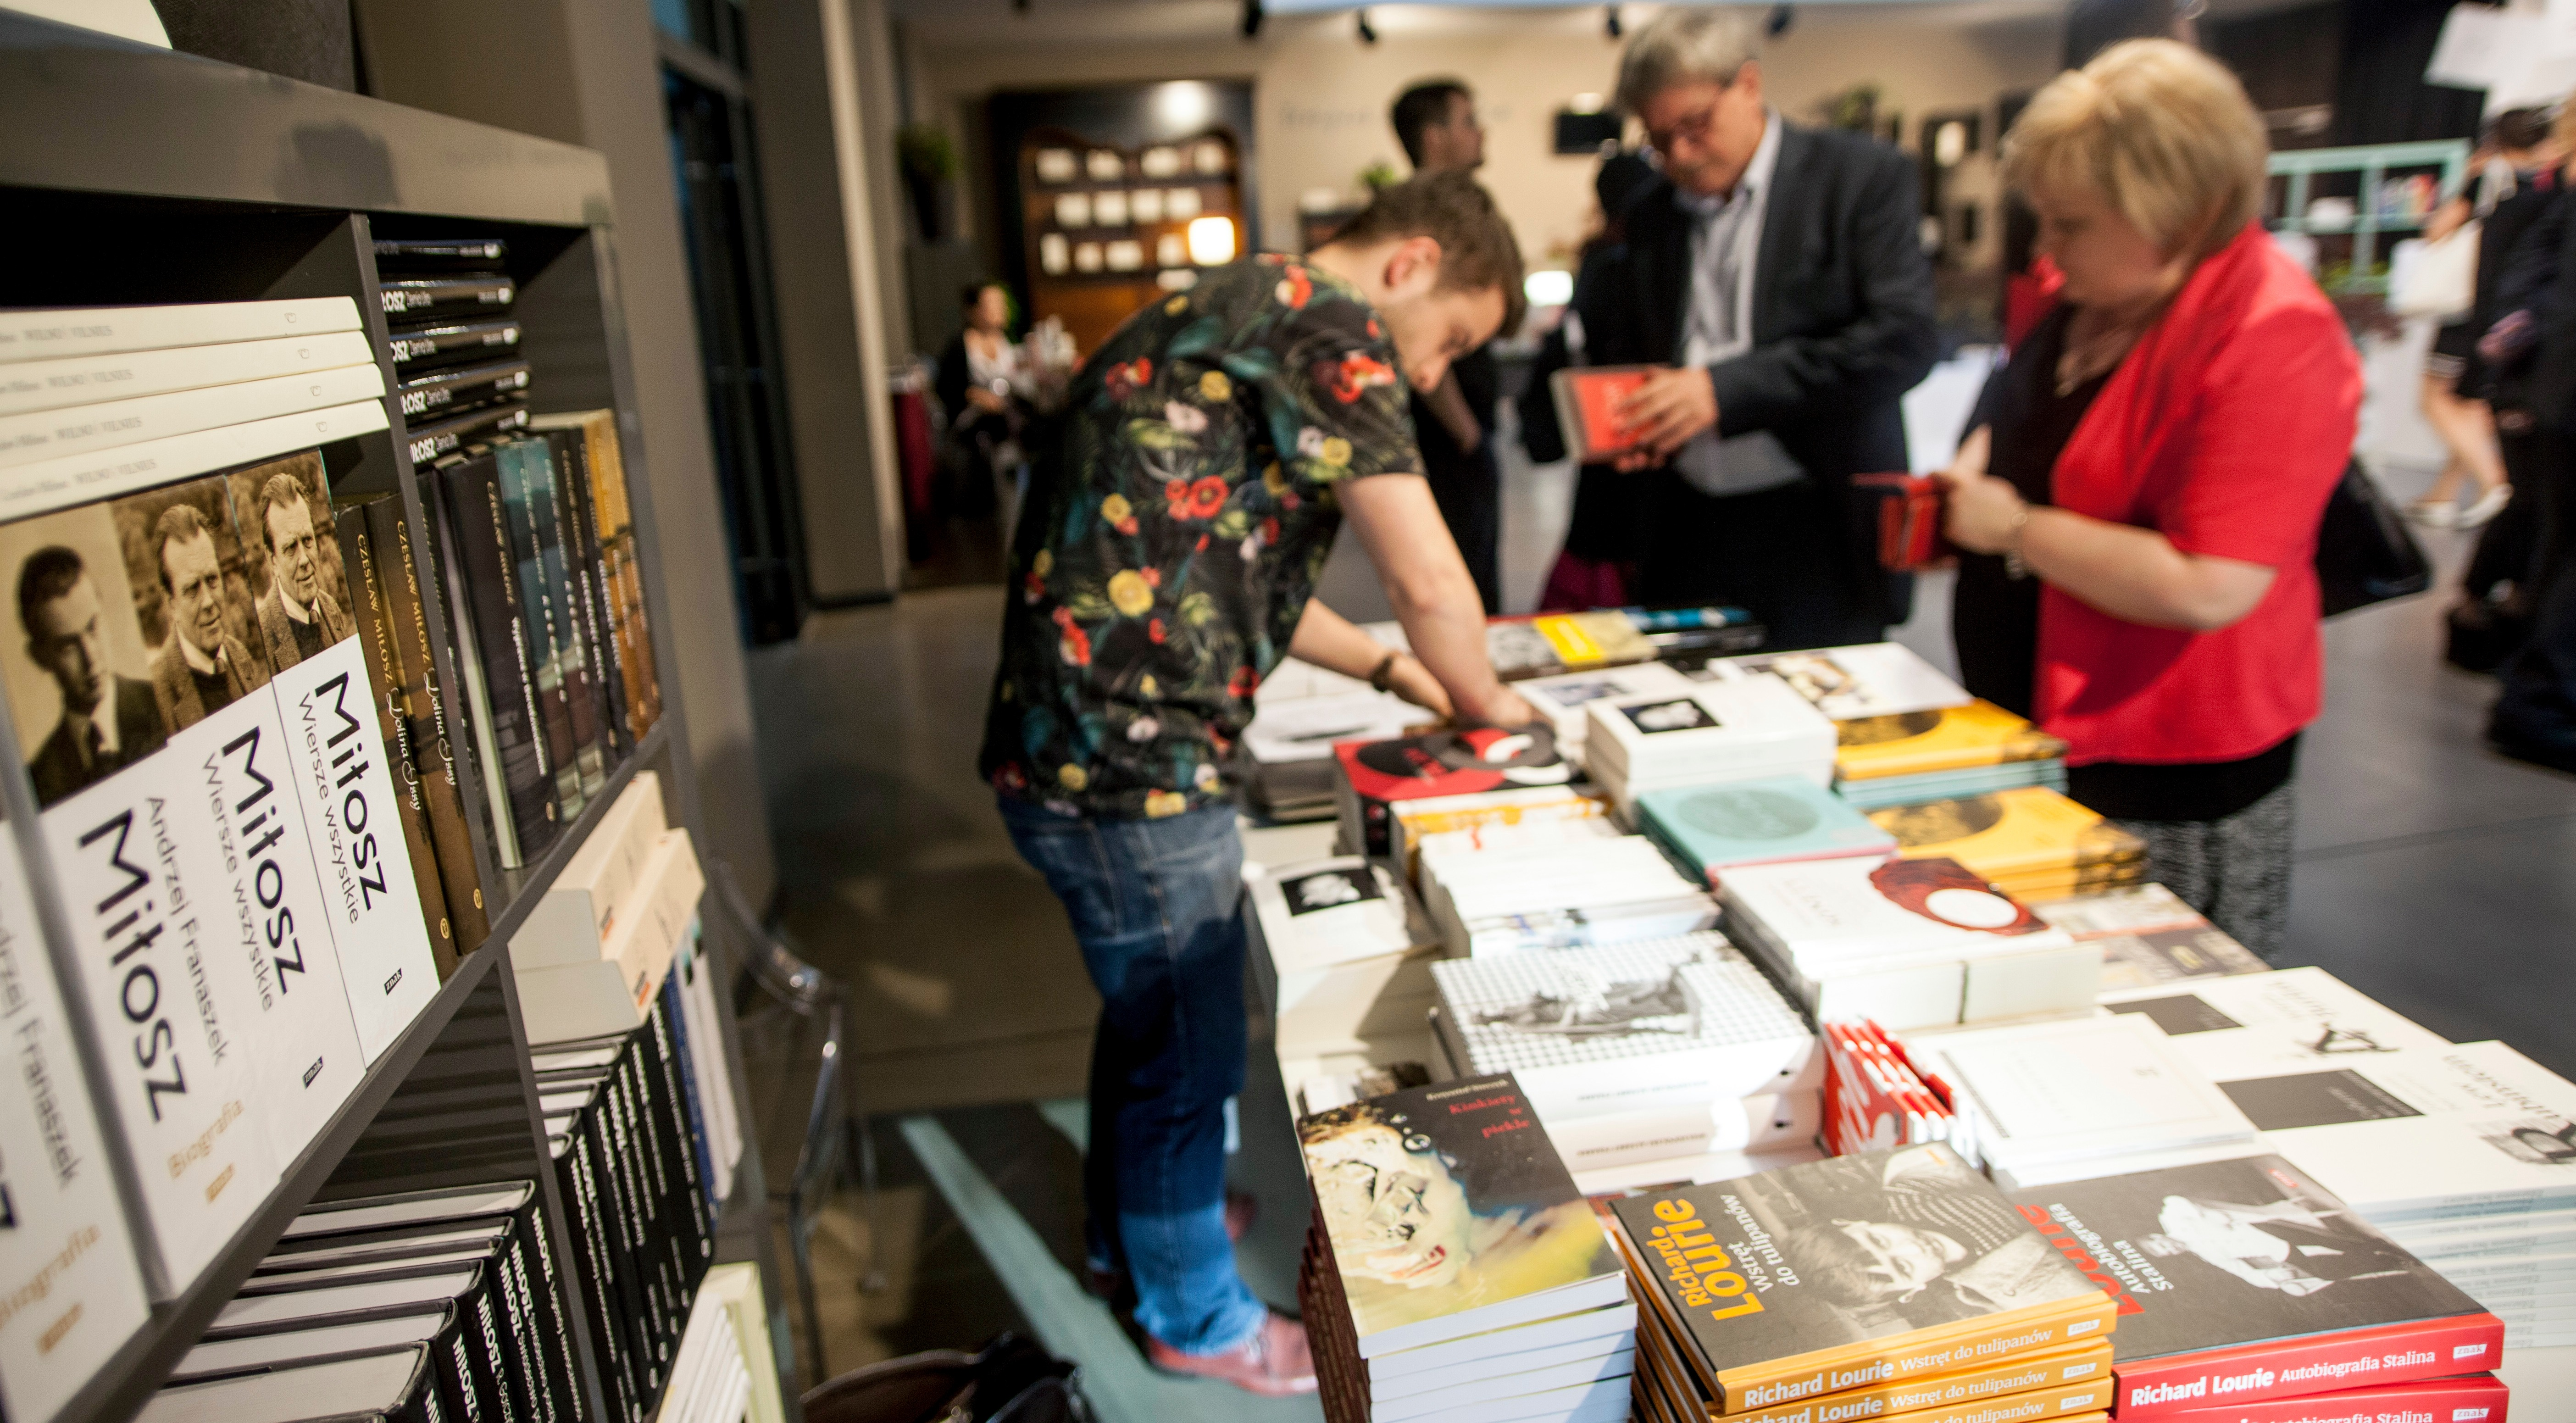 how Kraków became the reading capital of Poland – The First News 2